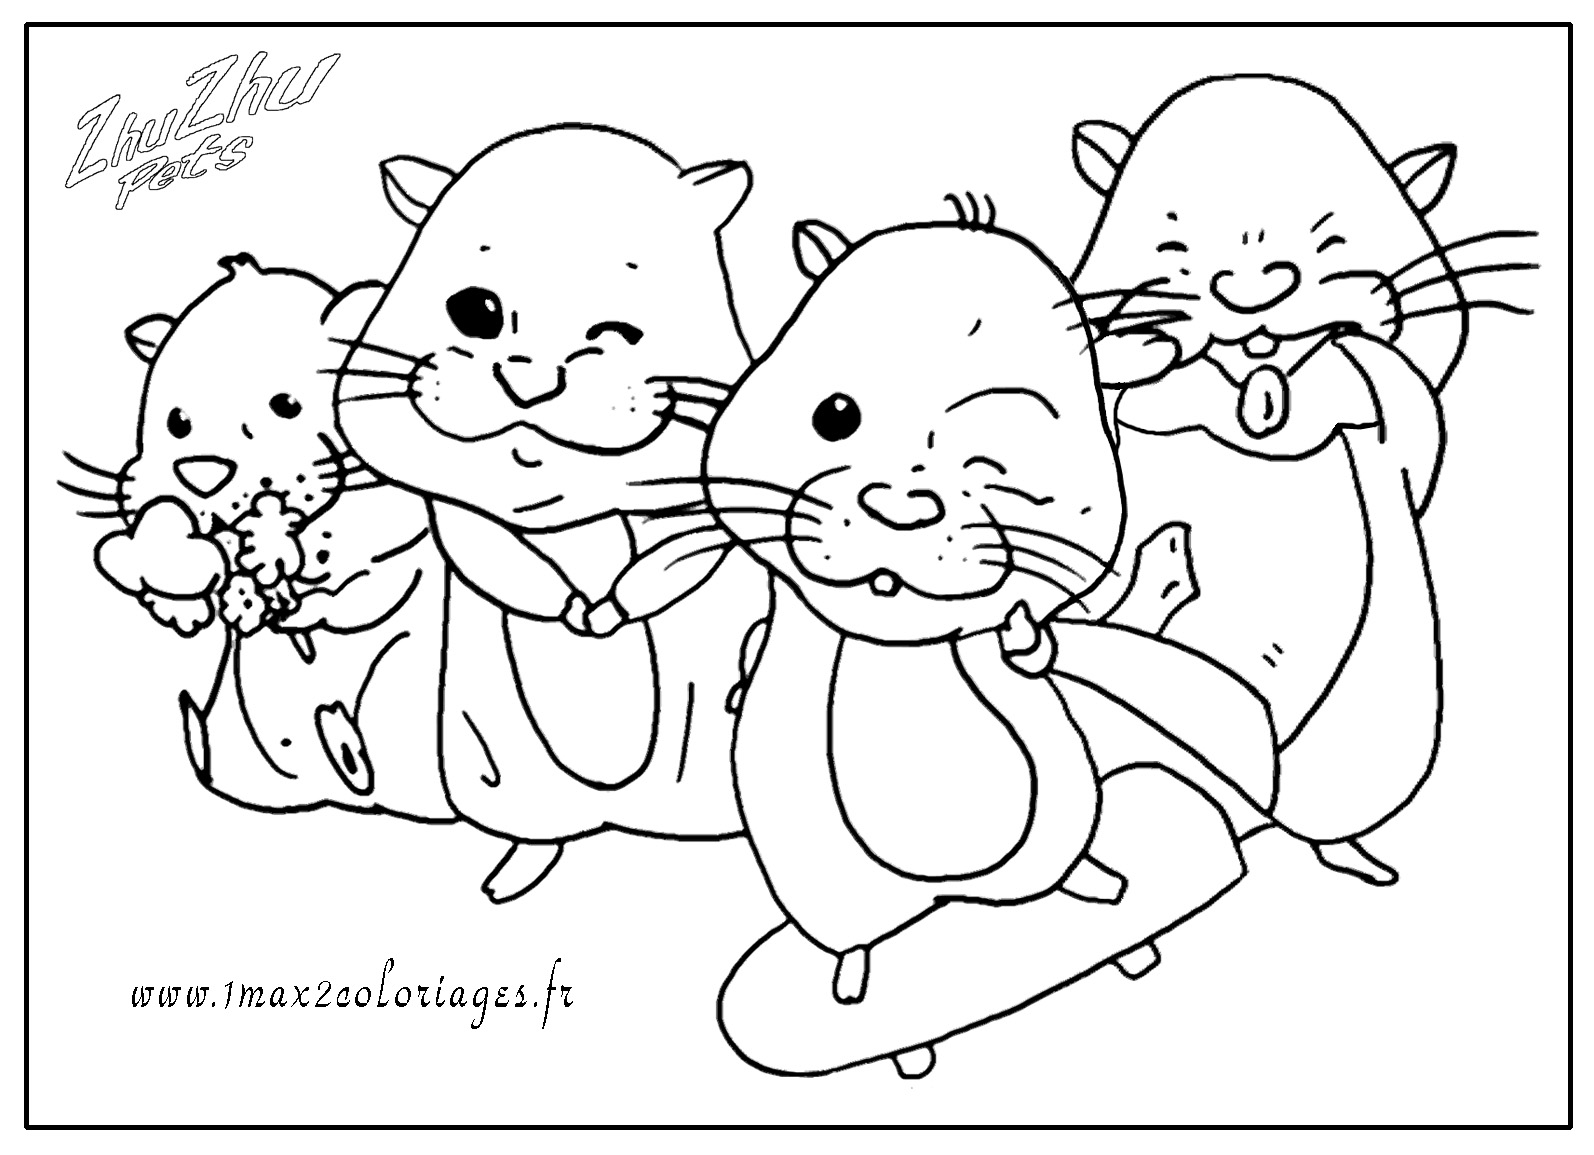 coloring pages of zuzu pets - photo#10